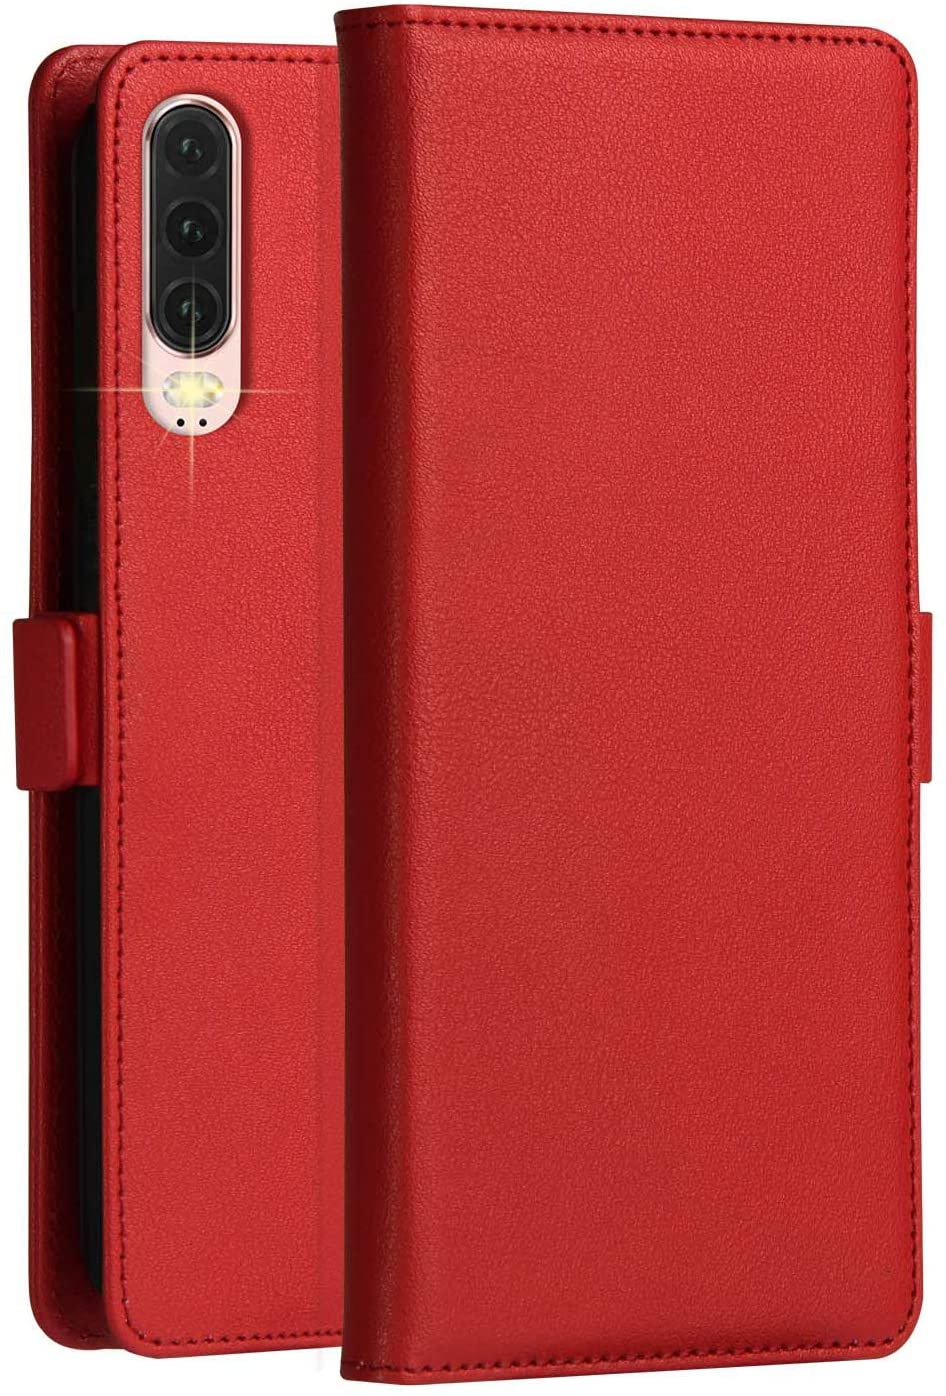 Huawei P30 Case KumWum Leather Wallet Cover with Flip Folio Kickstand and 3 Card Slots Magnetic Latch Closure Full Body Protective Cover for P30 (Red)